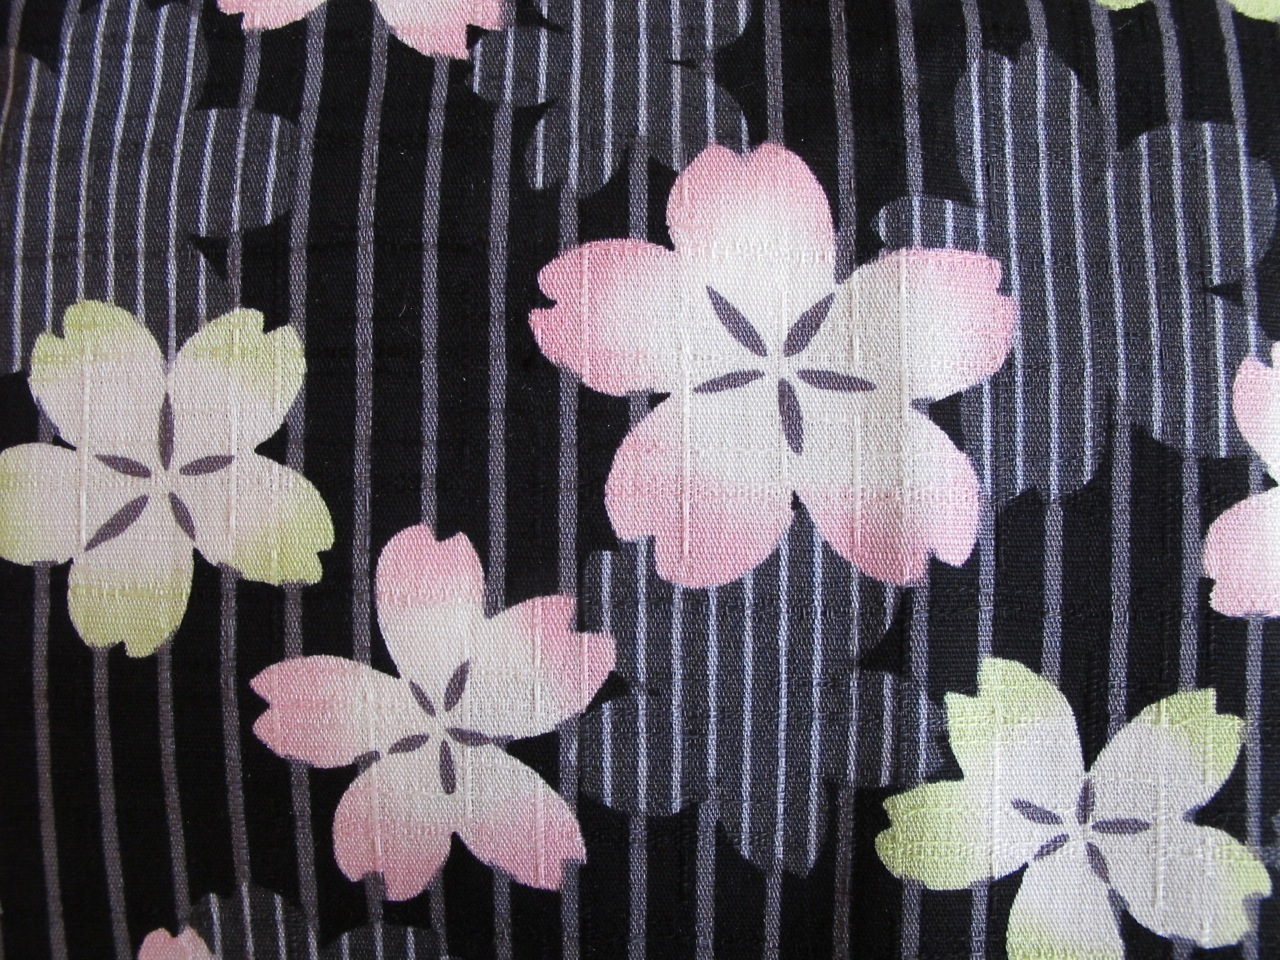 Cherry blossoms on fabric